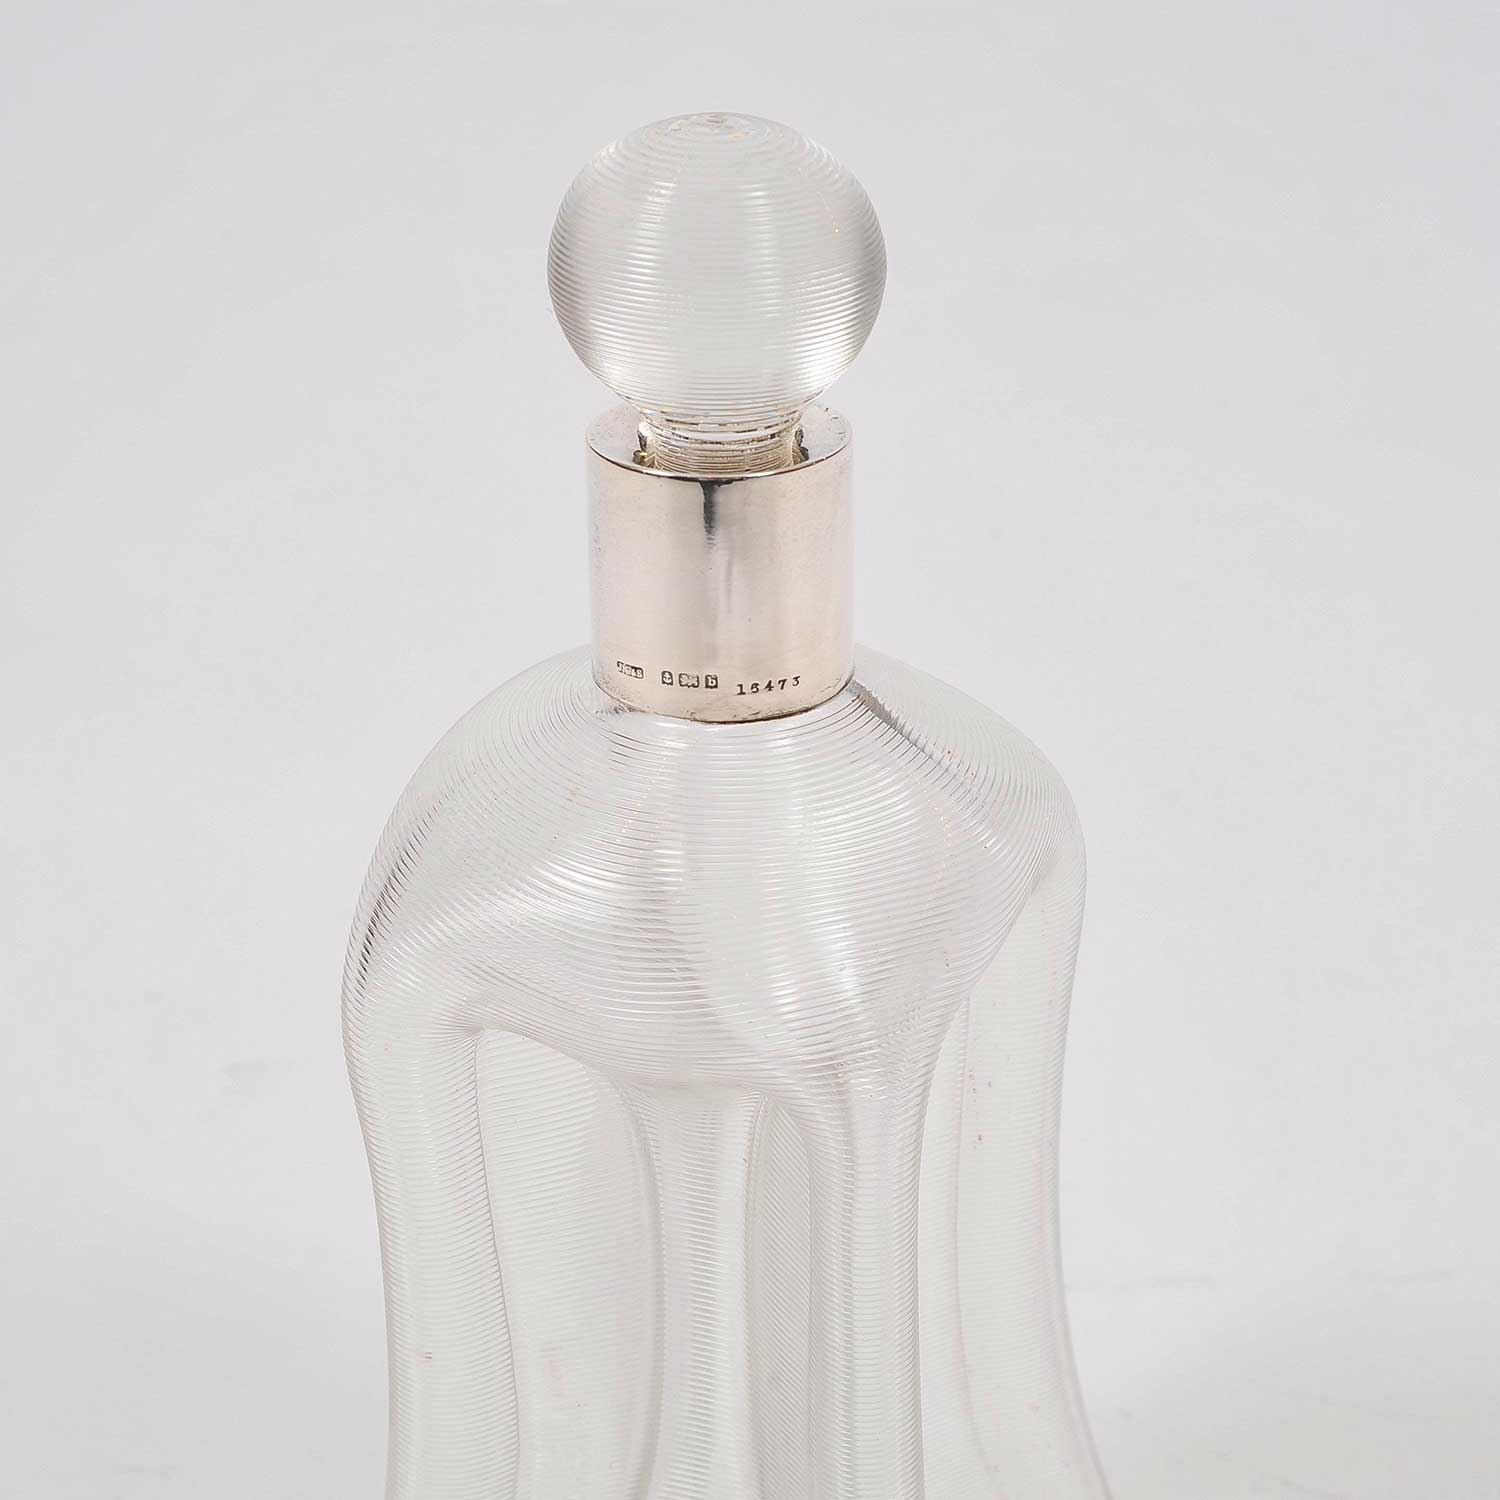 RIBBED GLASS DECANTER WITH SILVER COLLAR